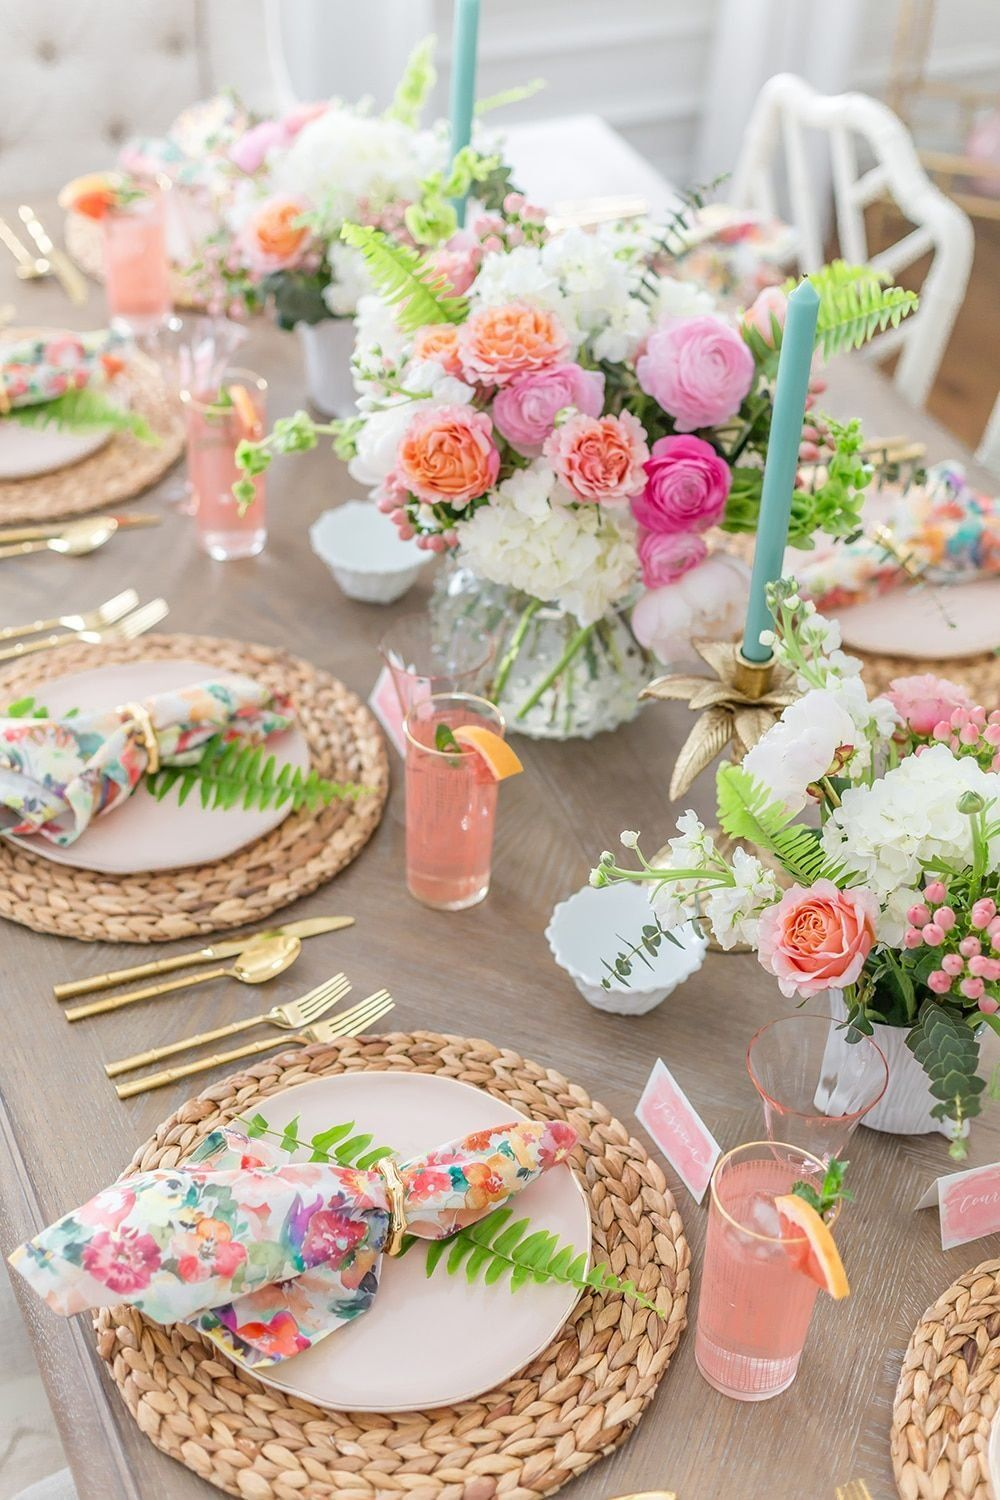 Tips to Set a Gorgeous Floral Summer Tablescape Celebrate summer with a Floral & Fern Summer Tablescape complete with all the details for recreating this pretty tablescape for your friends and family!